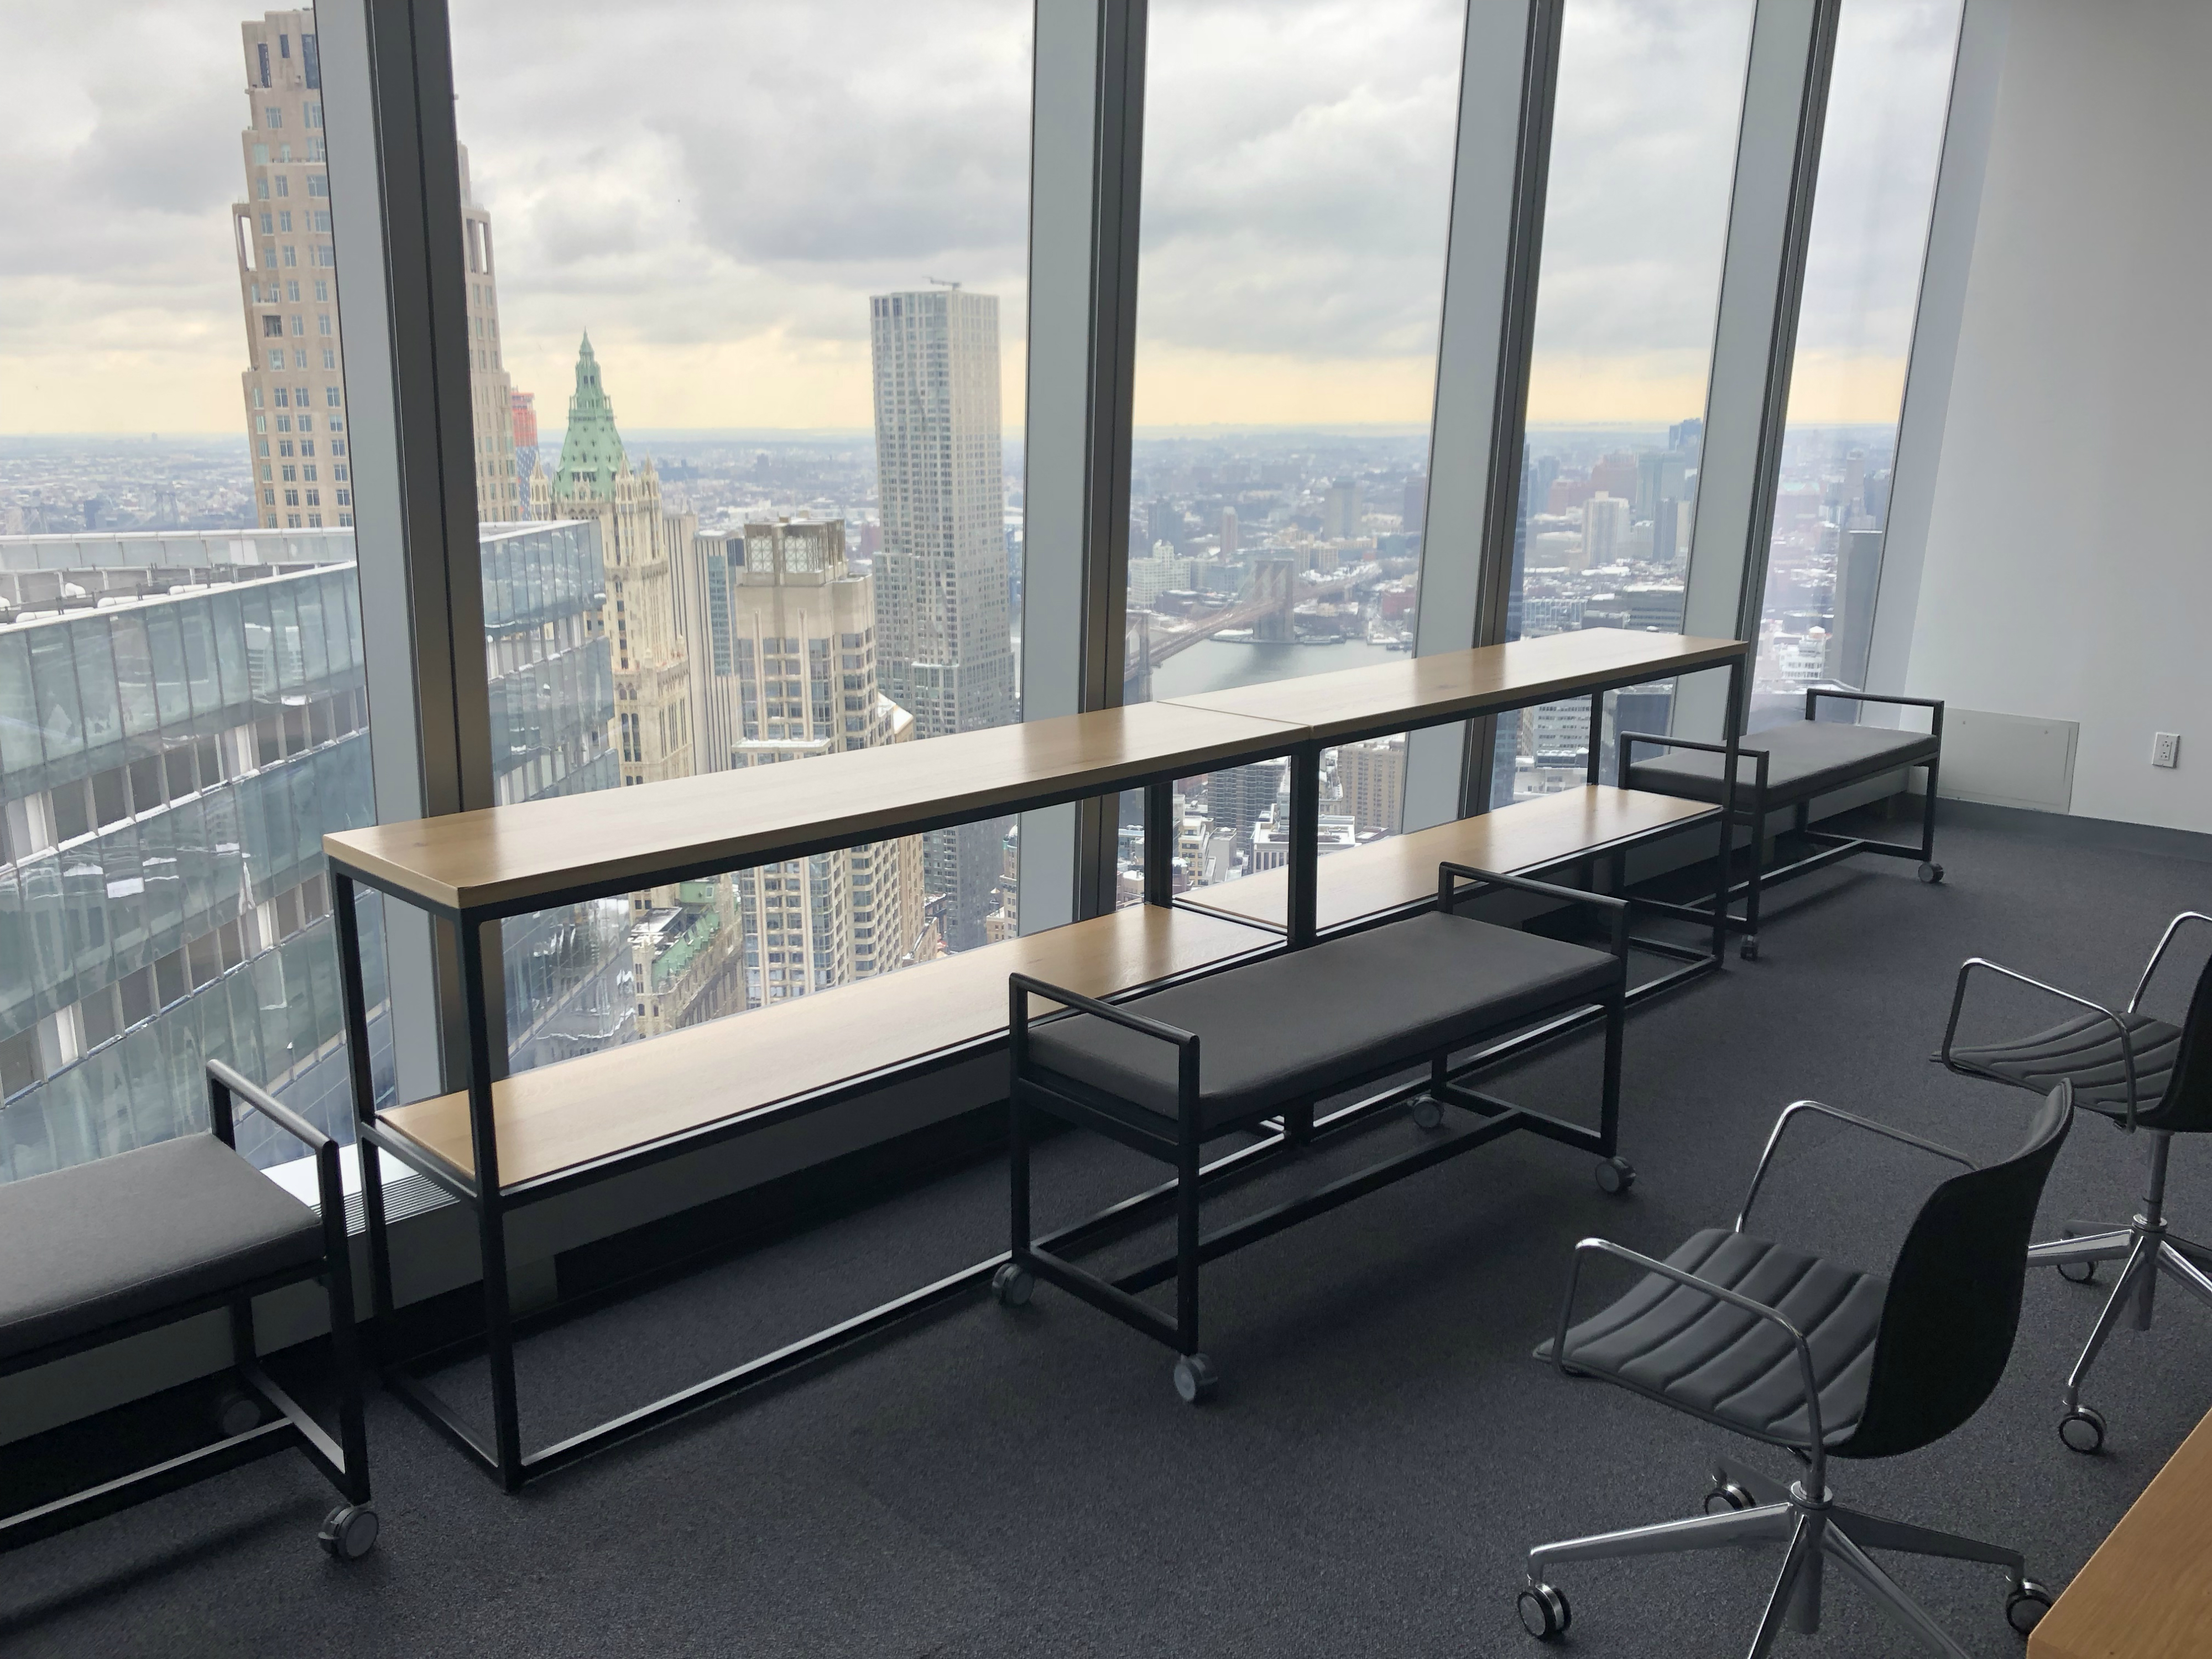 Table by window of a tall office building